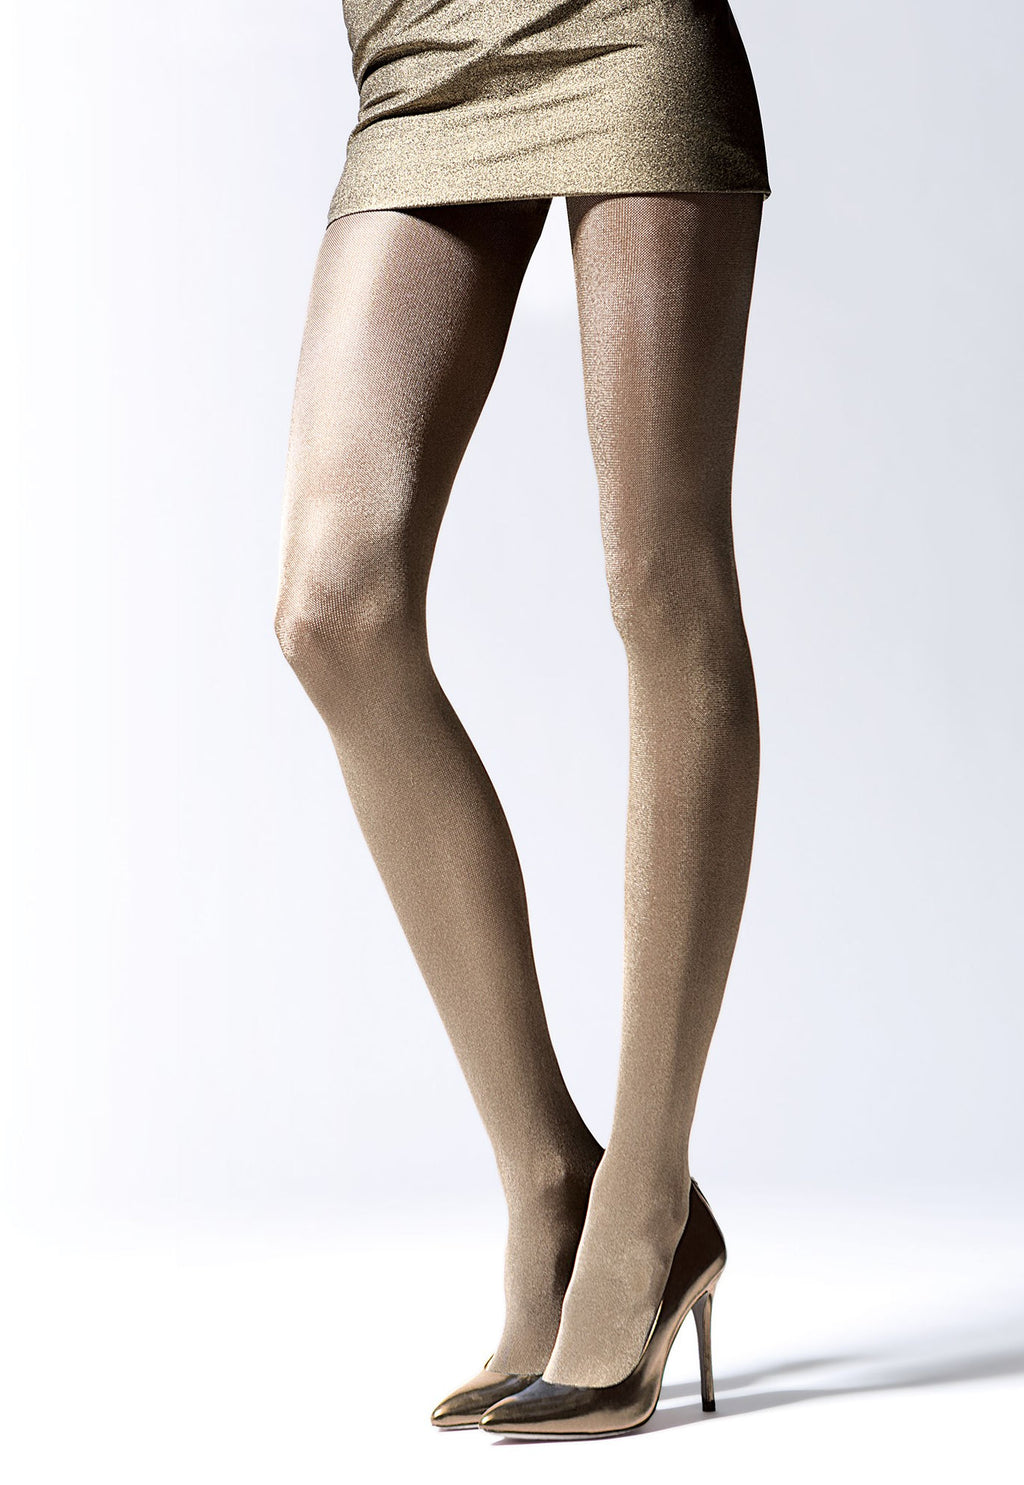 Brilliance 50 Den Metallic Glossy Opaque Tights by Knittex in gold